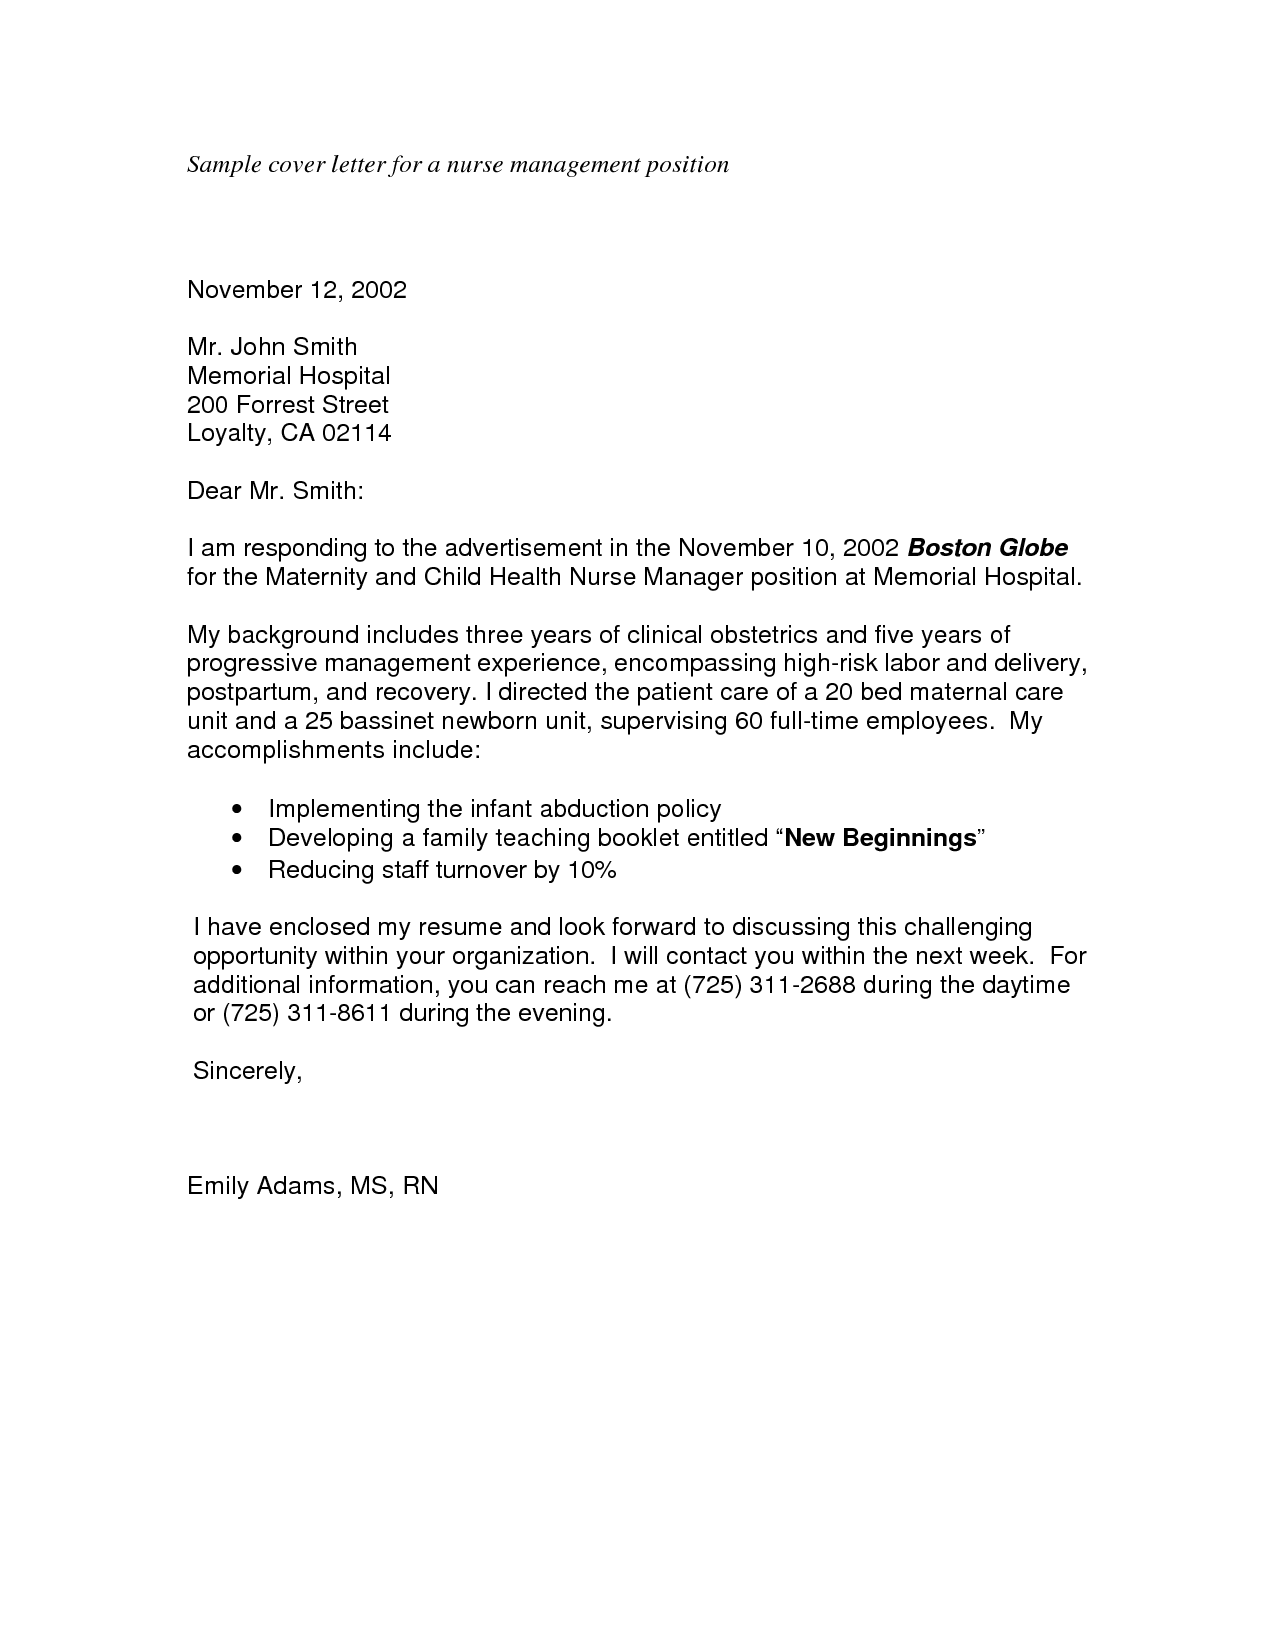 sample nursing application cover letters sample cover letter for a nurse management position pdf